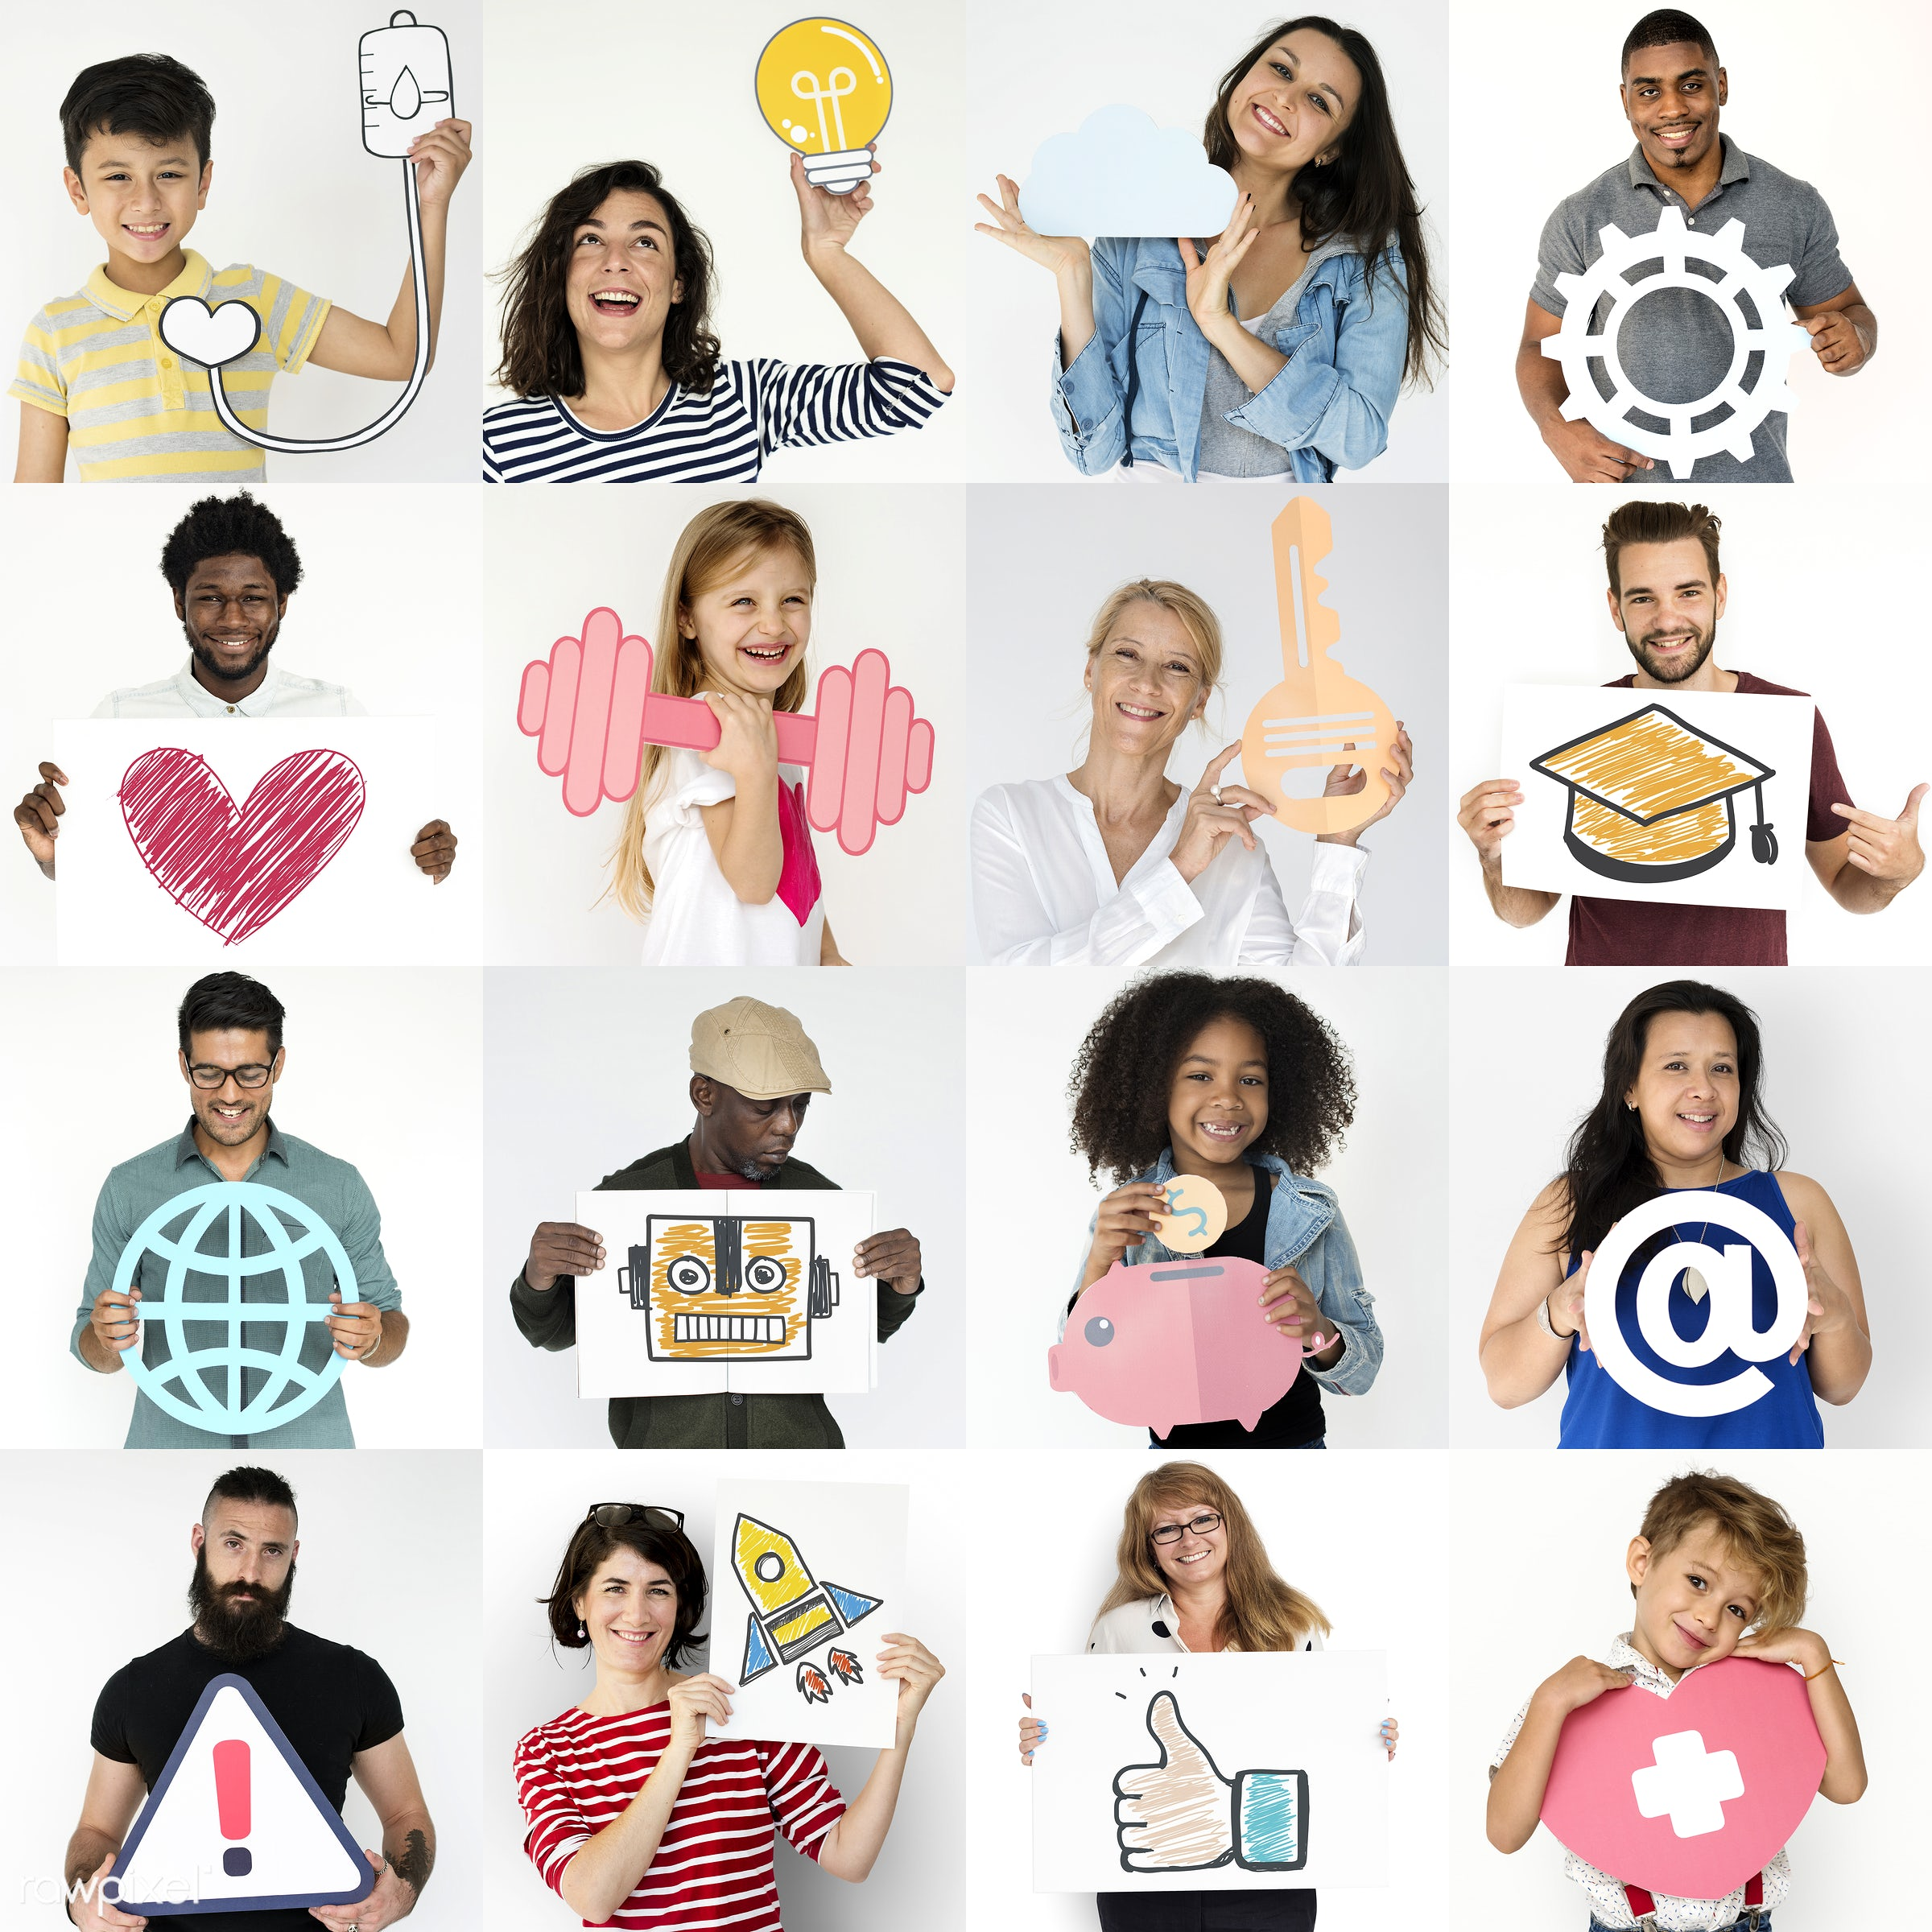 different, diverse, interests, variation, people, race, habits, conduct, life, integration, lifestyle, gender, situation,...